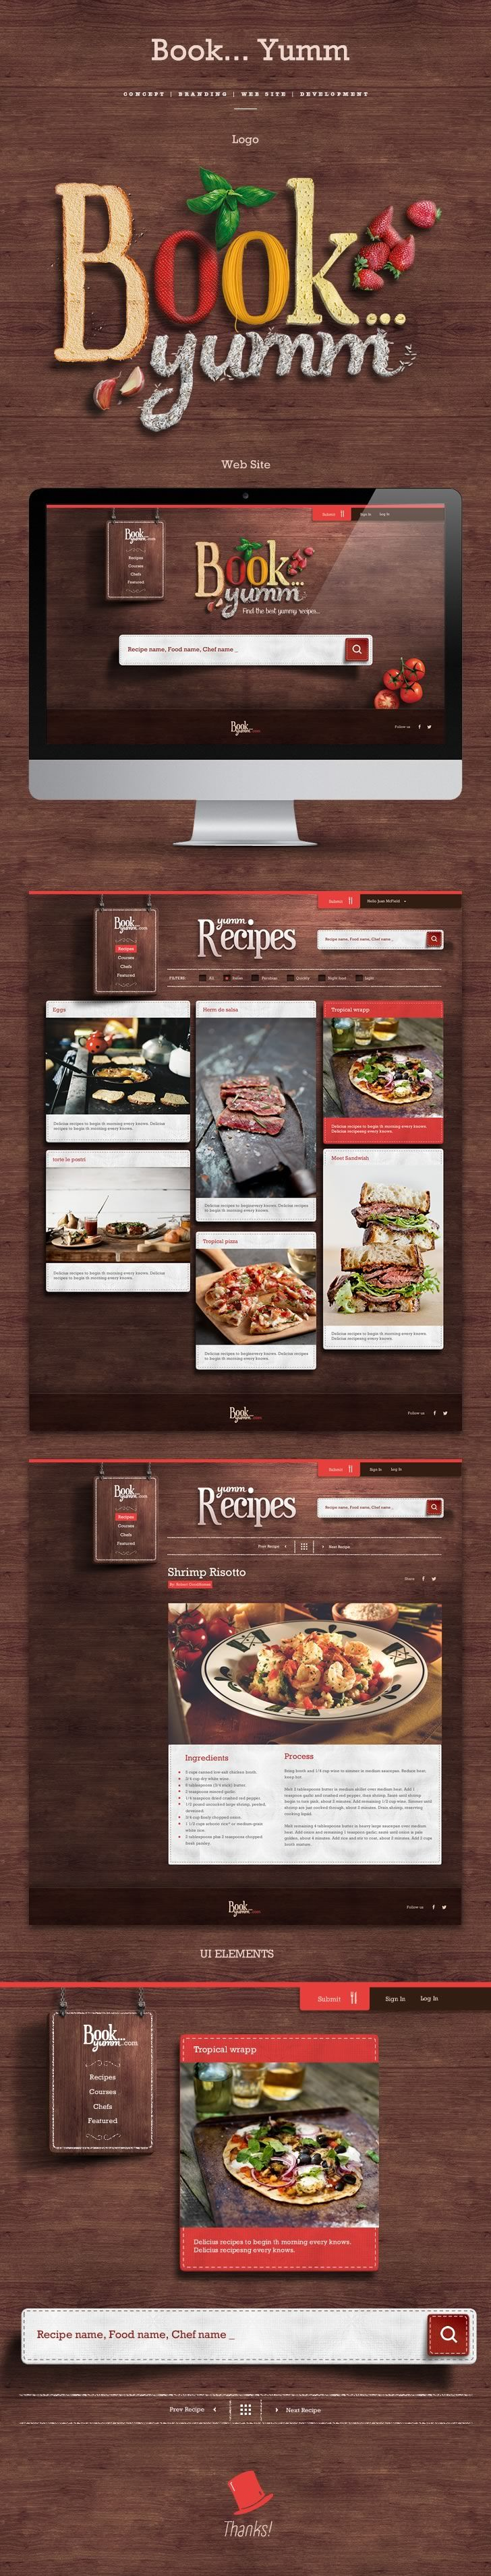 http://fixedagency.com/ Branding | Concept | Web Site | Development - A cookbook that includes a cooking course featuring advice from well-known chefs around the world.